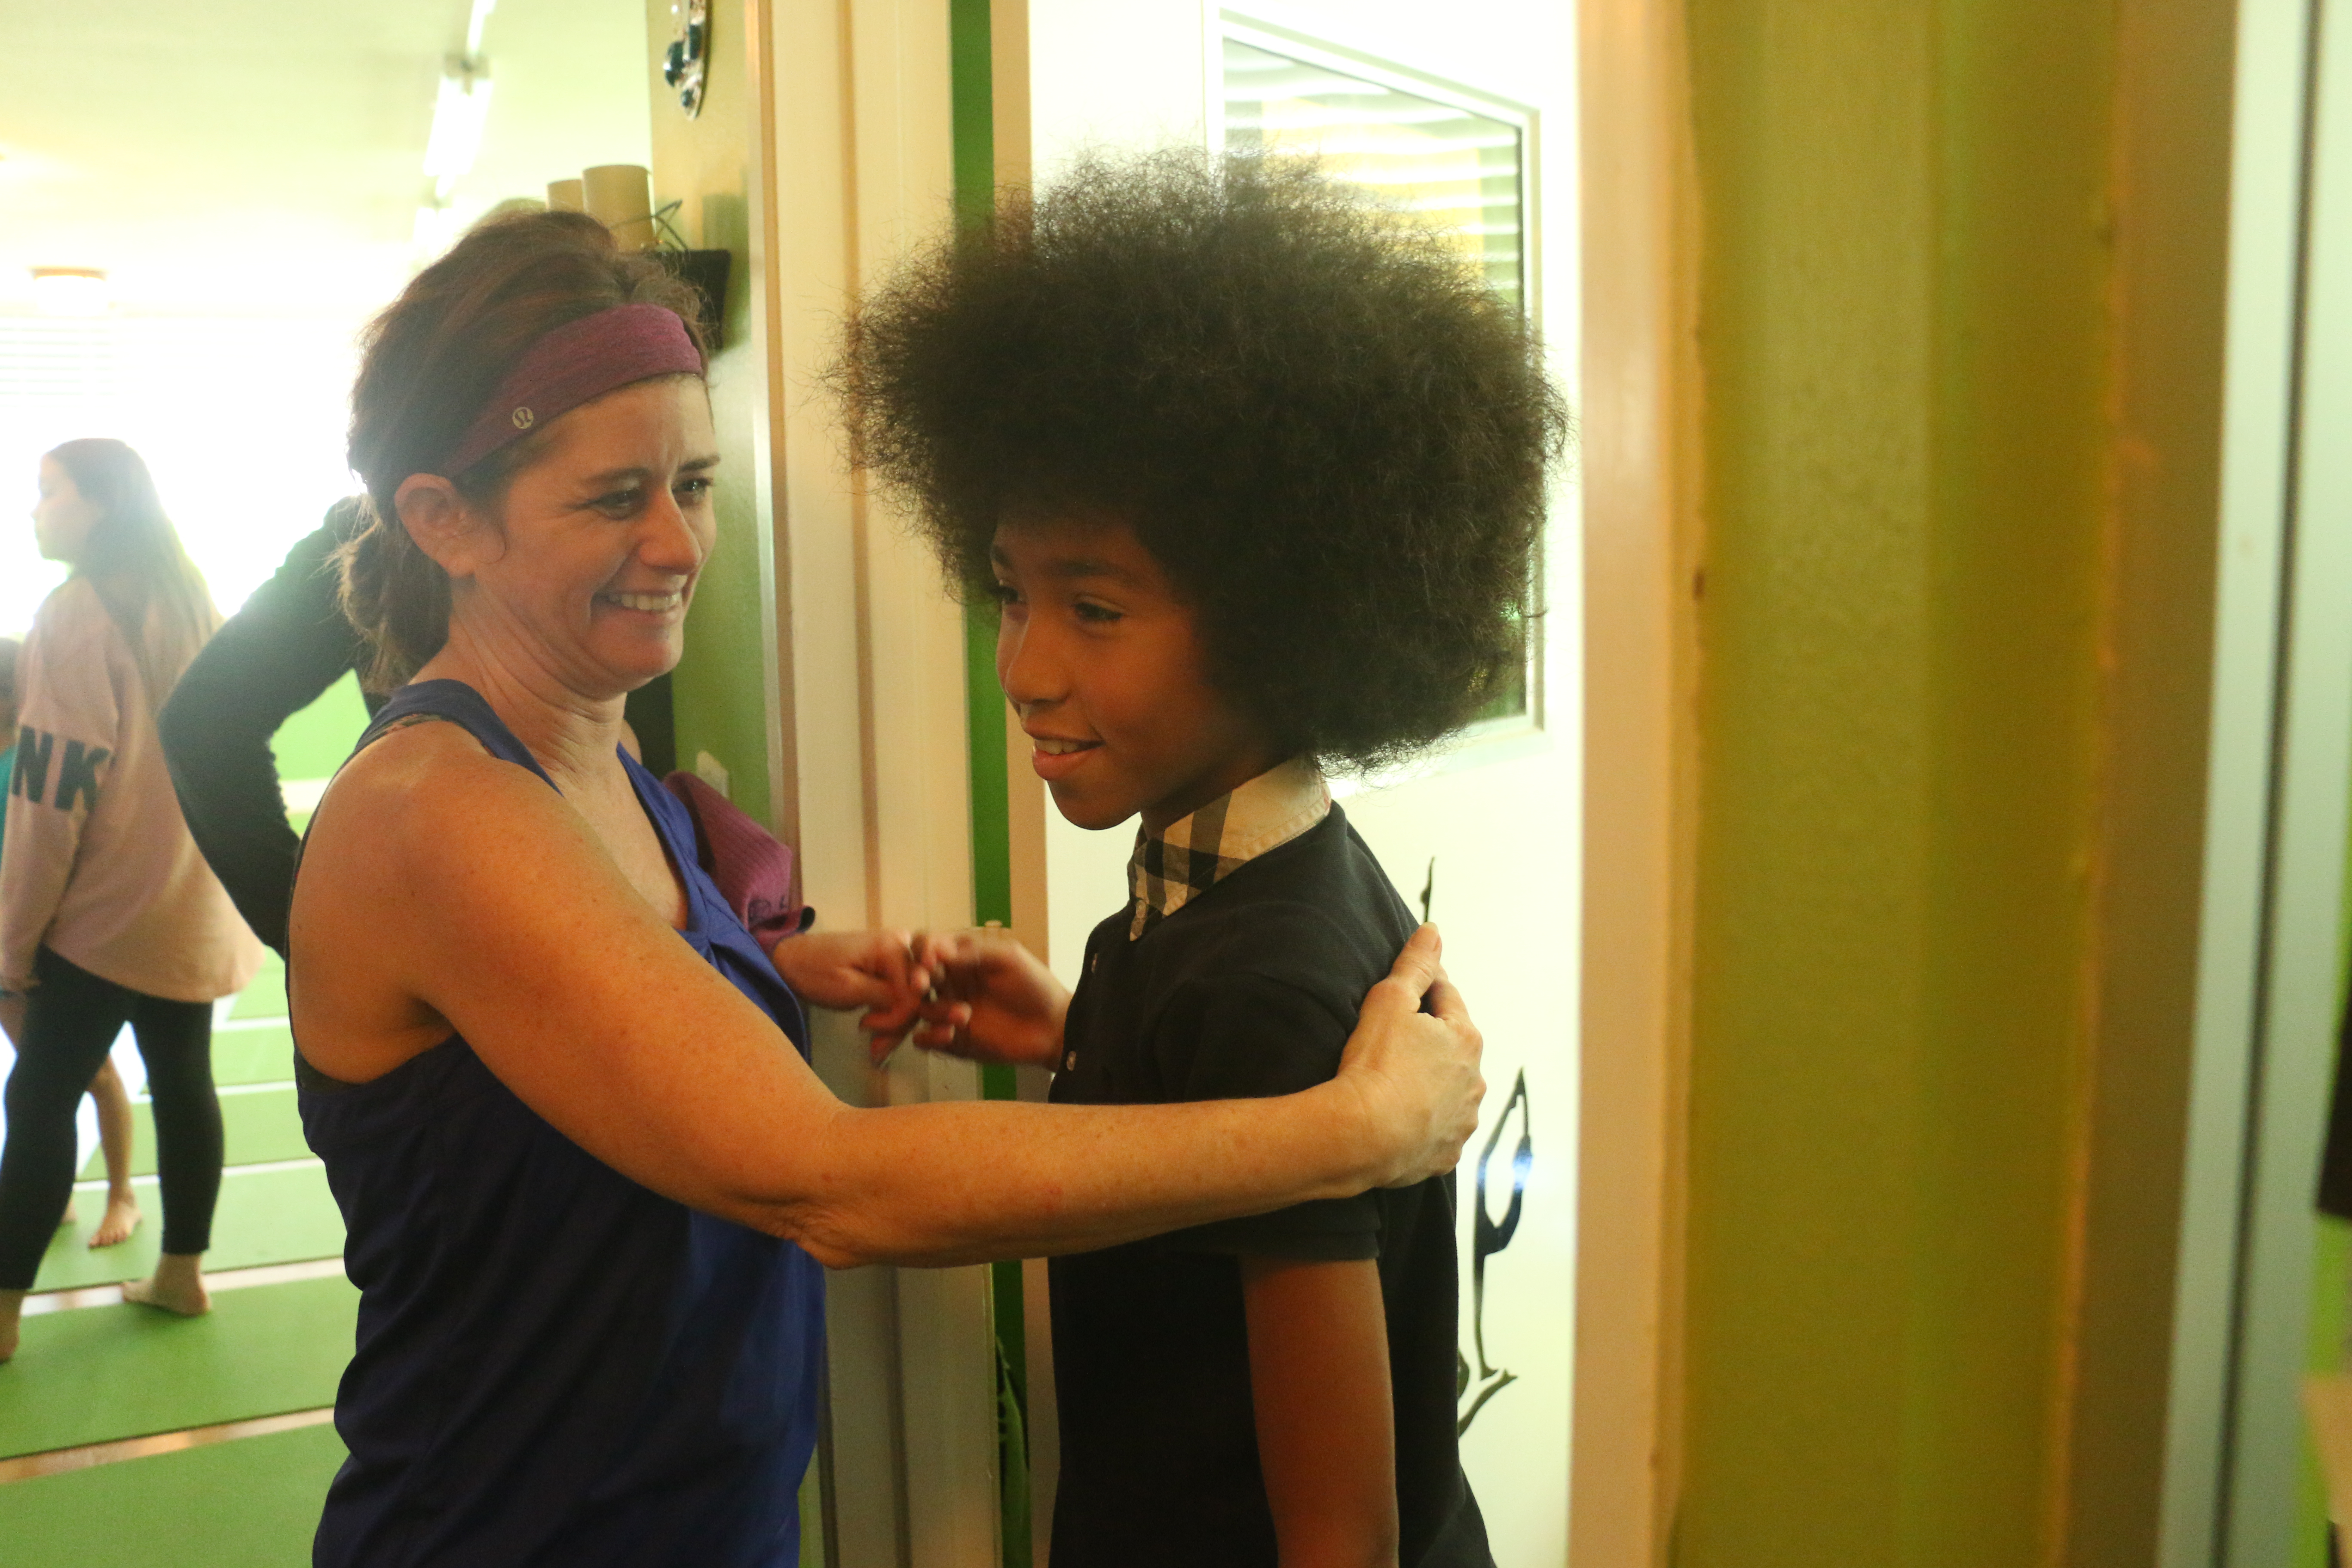 Kim Hanley, a teacher at Vista Del Mar Middle School, gives a hug to her English student Larry Tabay Atkins IV, who gave her a yoga lesson at his mother's studio, care4yoga, on Saturday, Jan. 14, in San Clemente. Photo: Eric Heinz